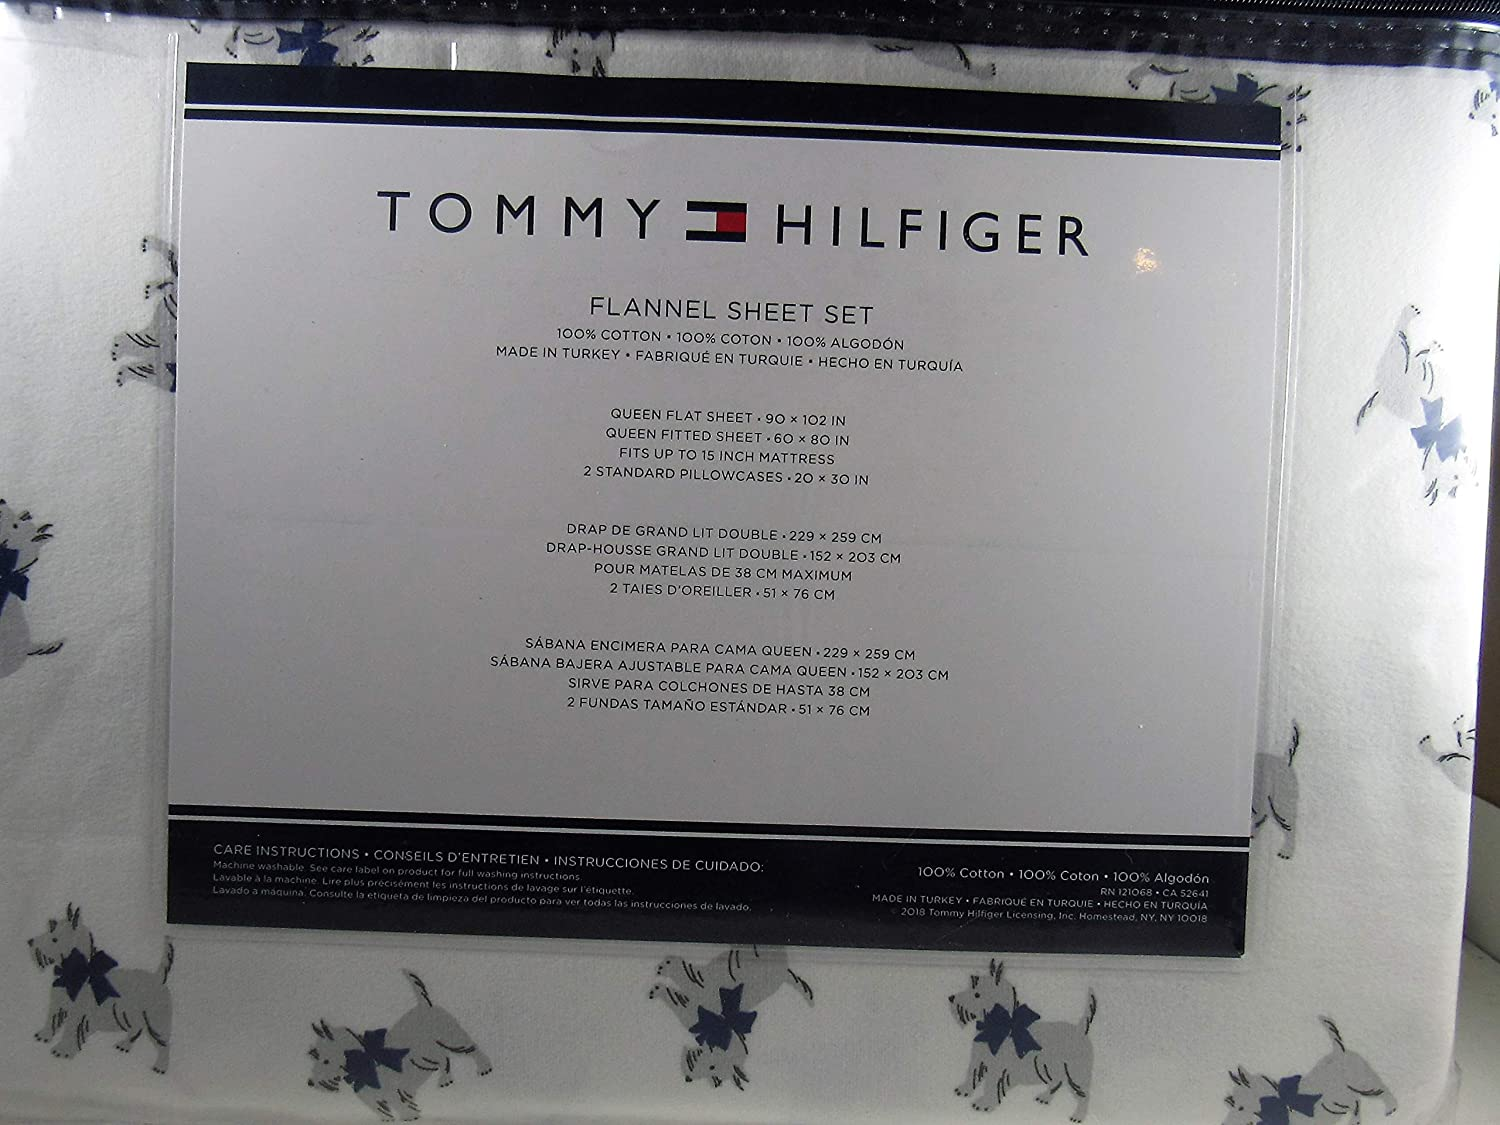 Amazon.com: Tommy Hilfiger Scottie Dog Flannel Queen Sheet Set 100% Cotton: Home & Kitchen